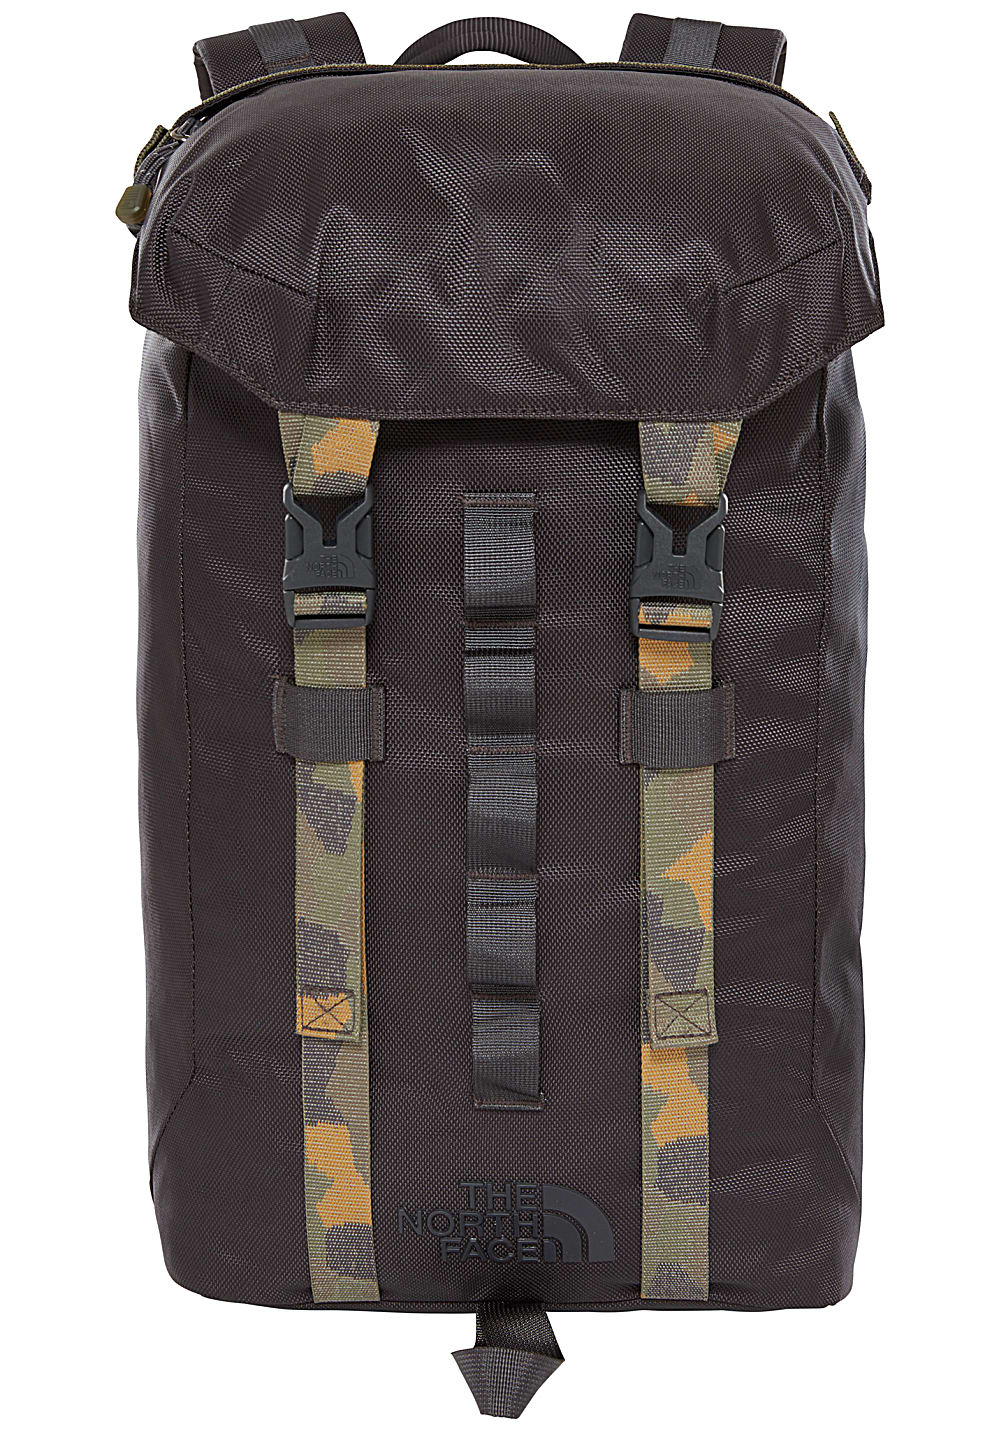 The North Face Lineage Ruck 23L Rucksack - Grau